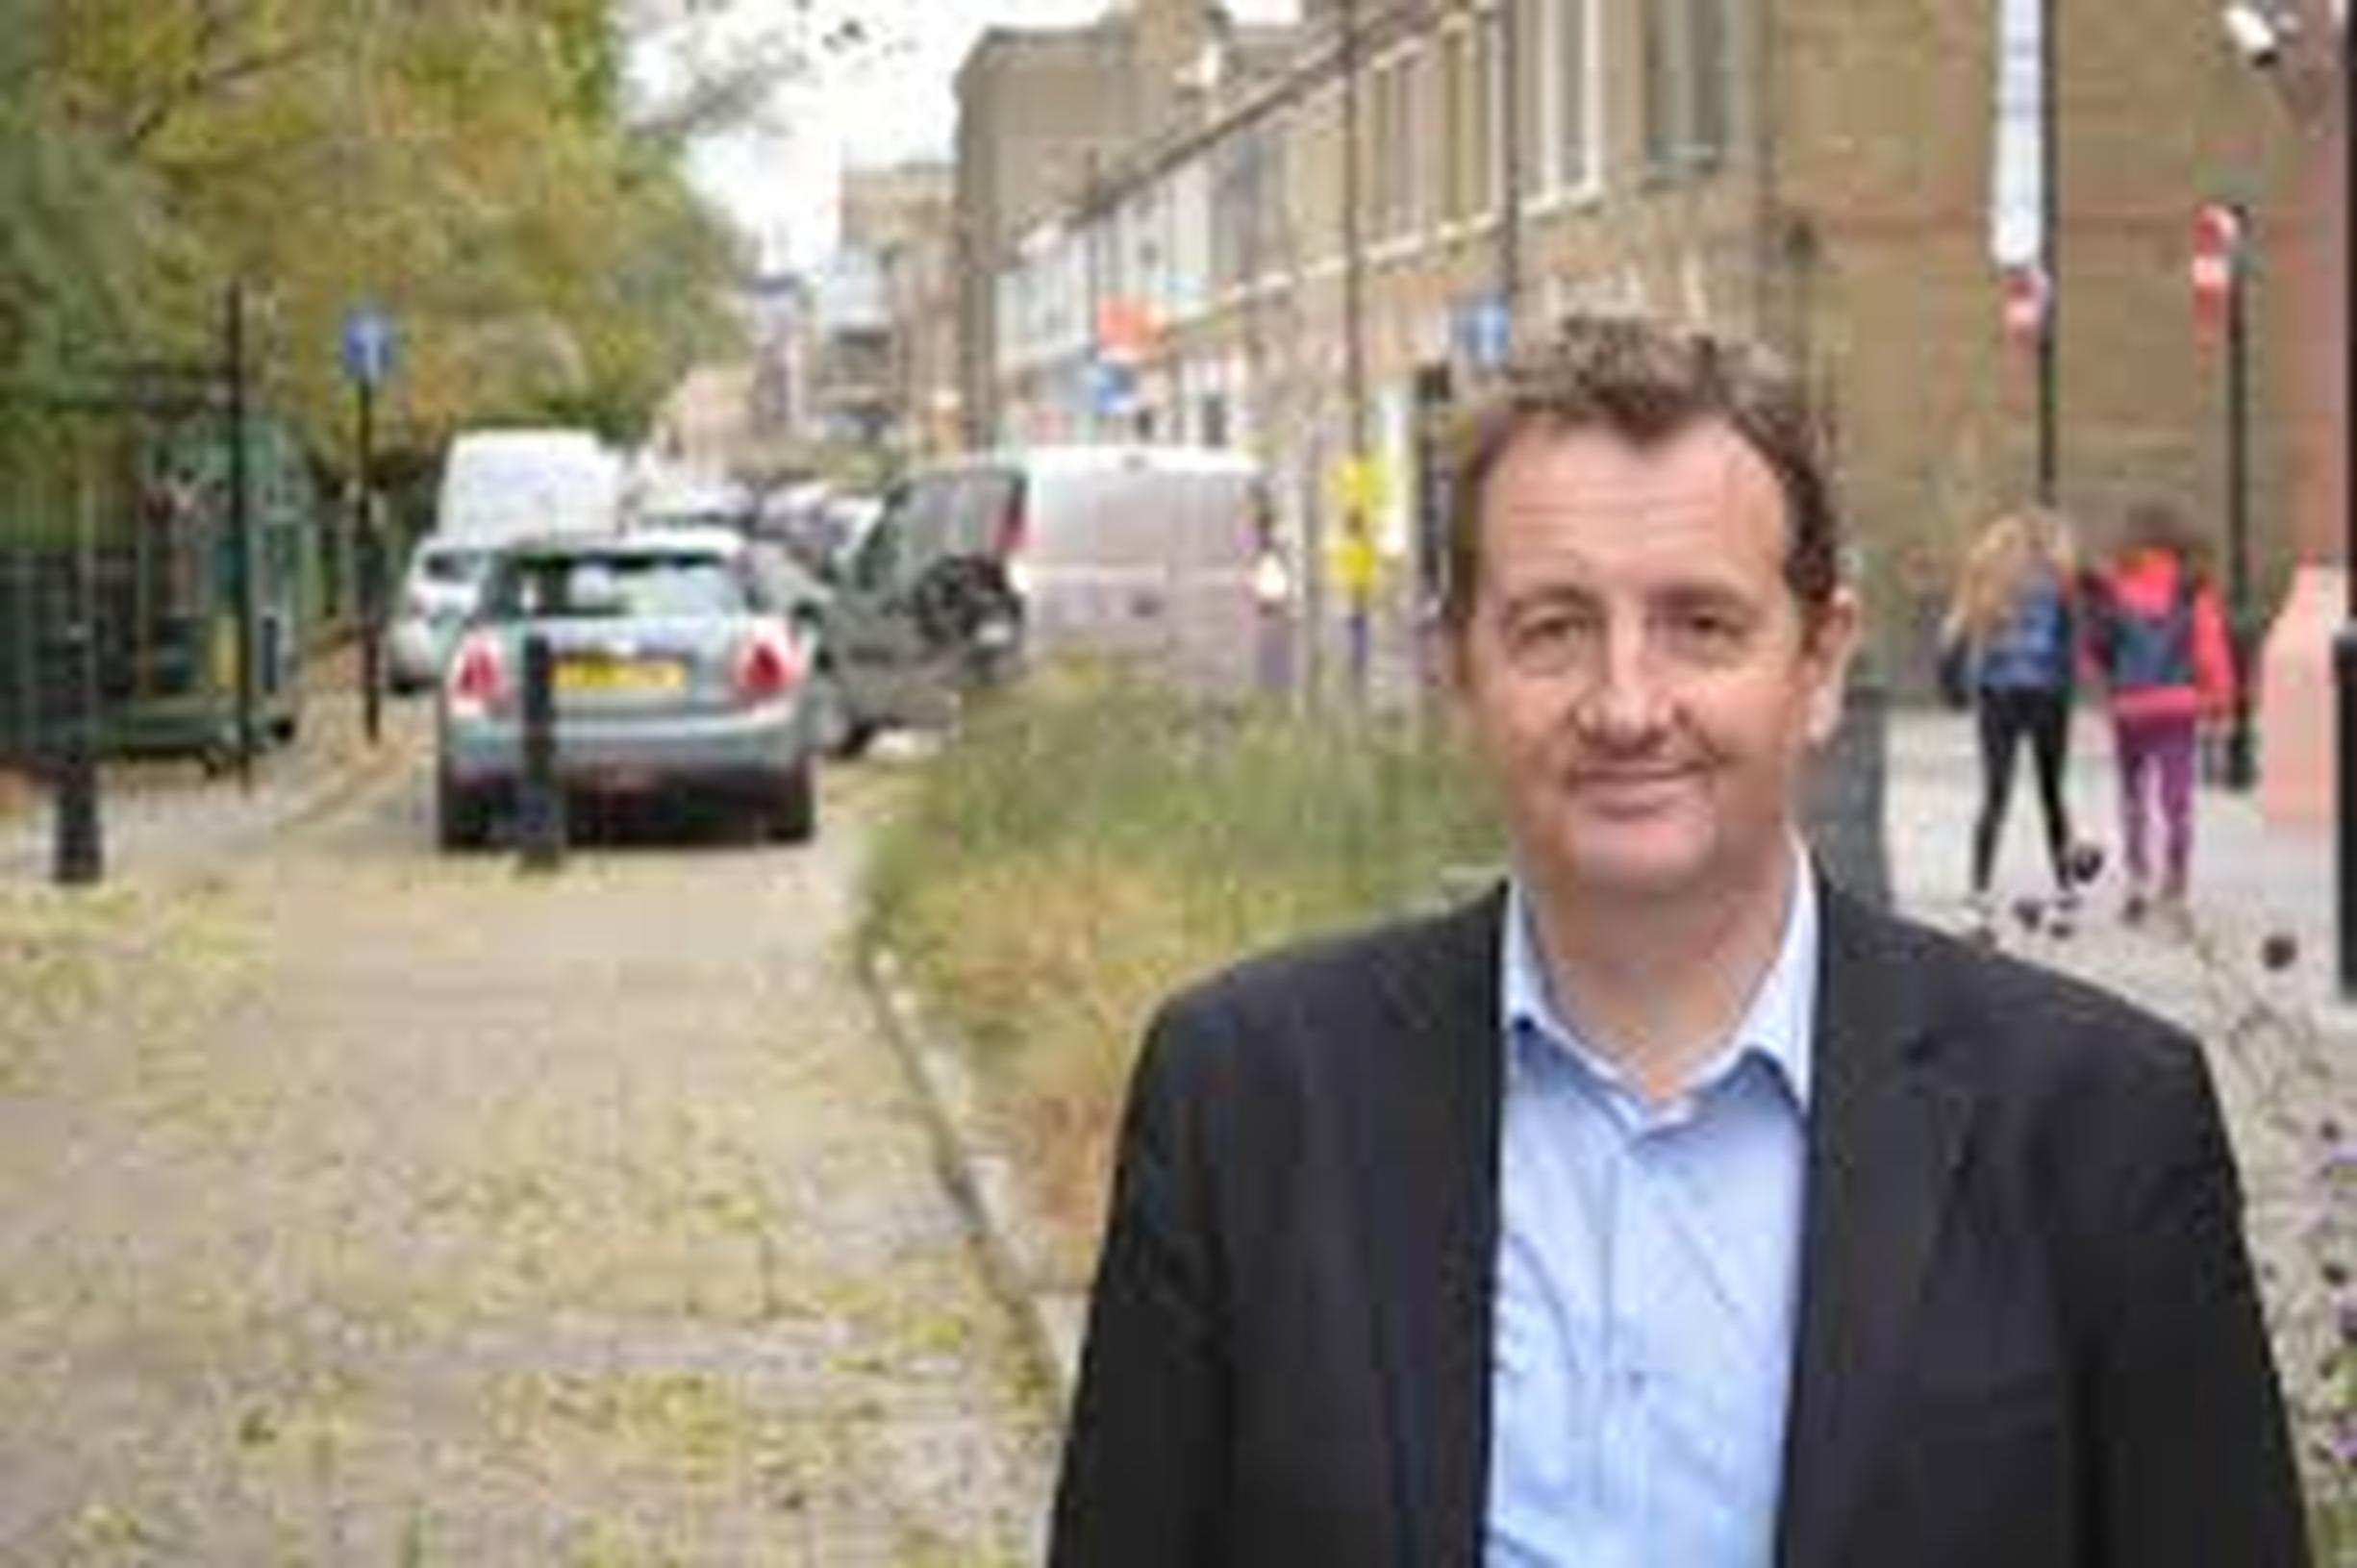 `All key workers in the borough using cars or other vehicles to get around can rest assured that borough parking teams are on their side and should not hesitate to inform us of their parking requirements at this time.` Cllr Julian Bell